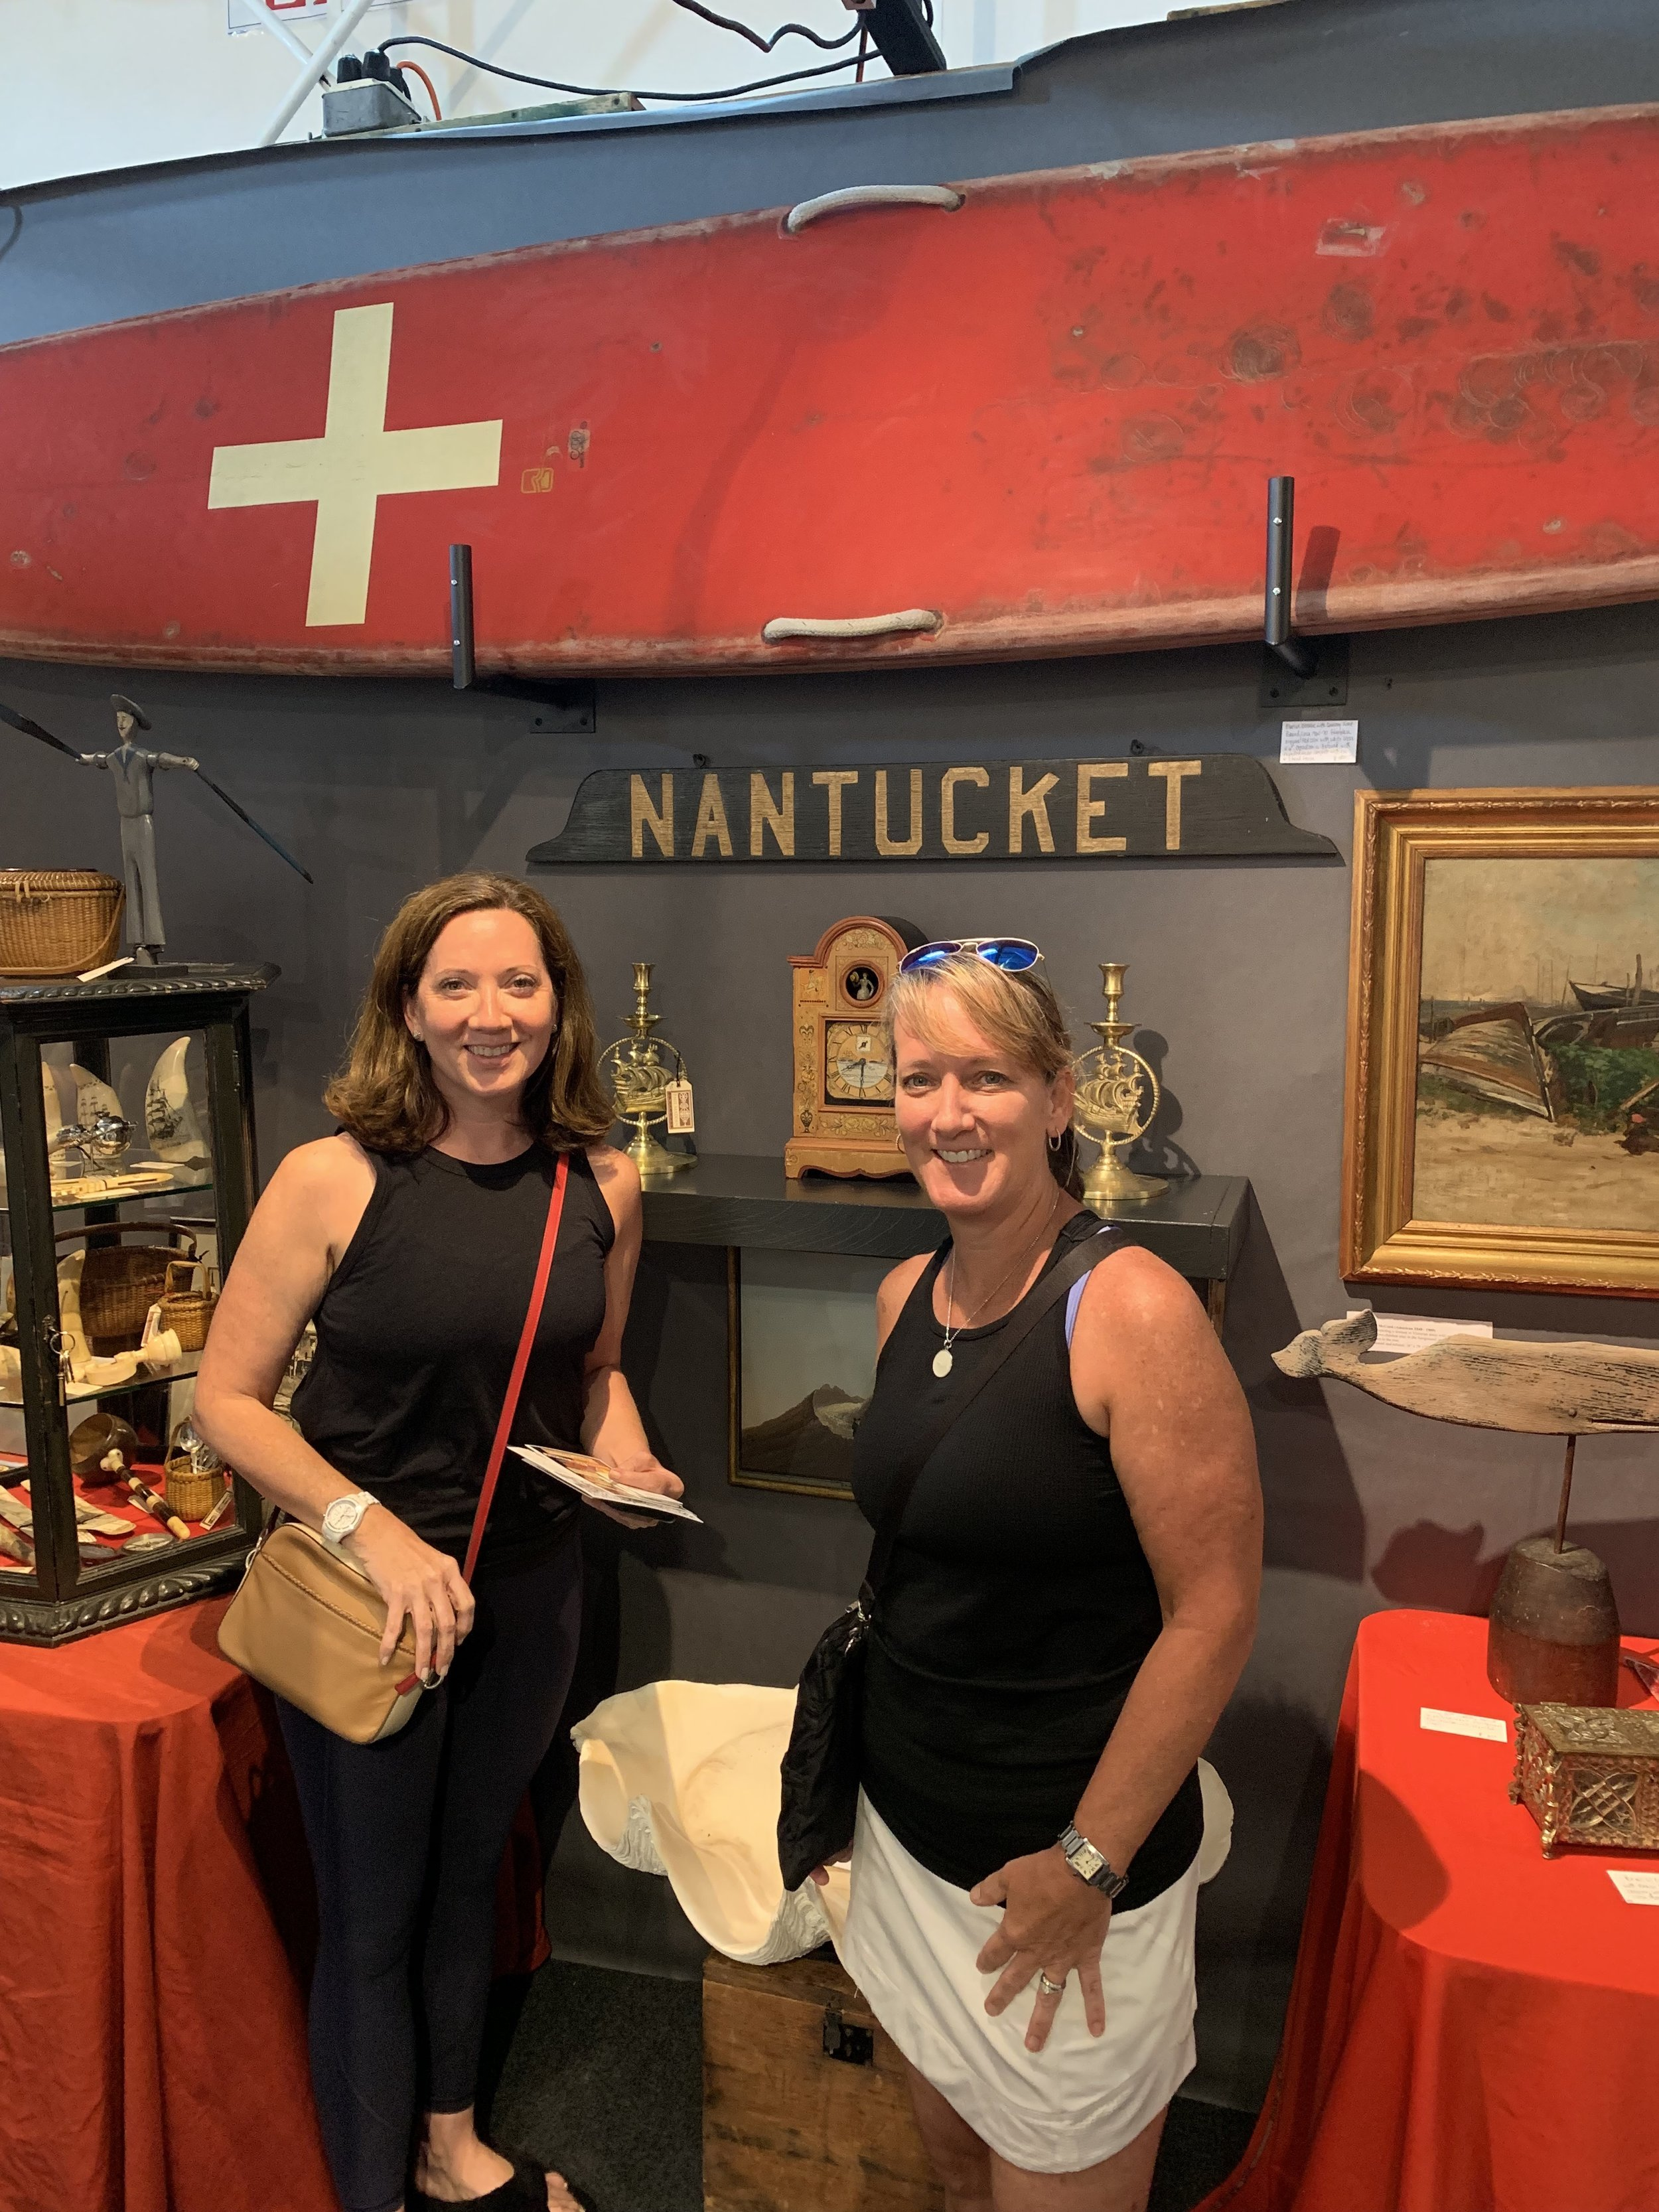 {Laura and I at the antiques show. She purchased this Nantucket sign for her new kitchen}